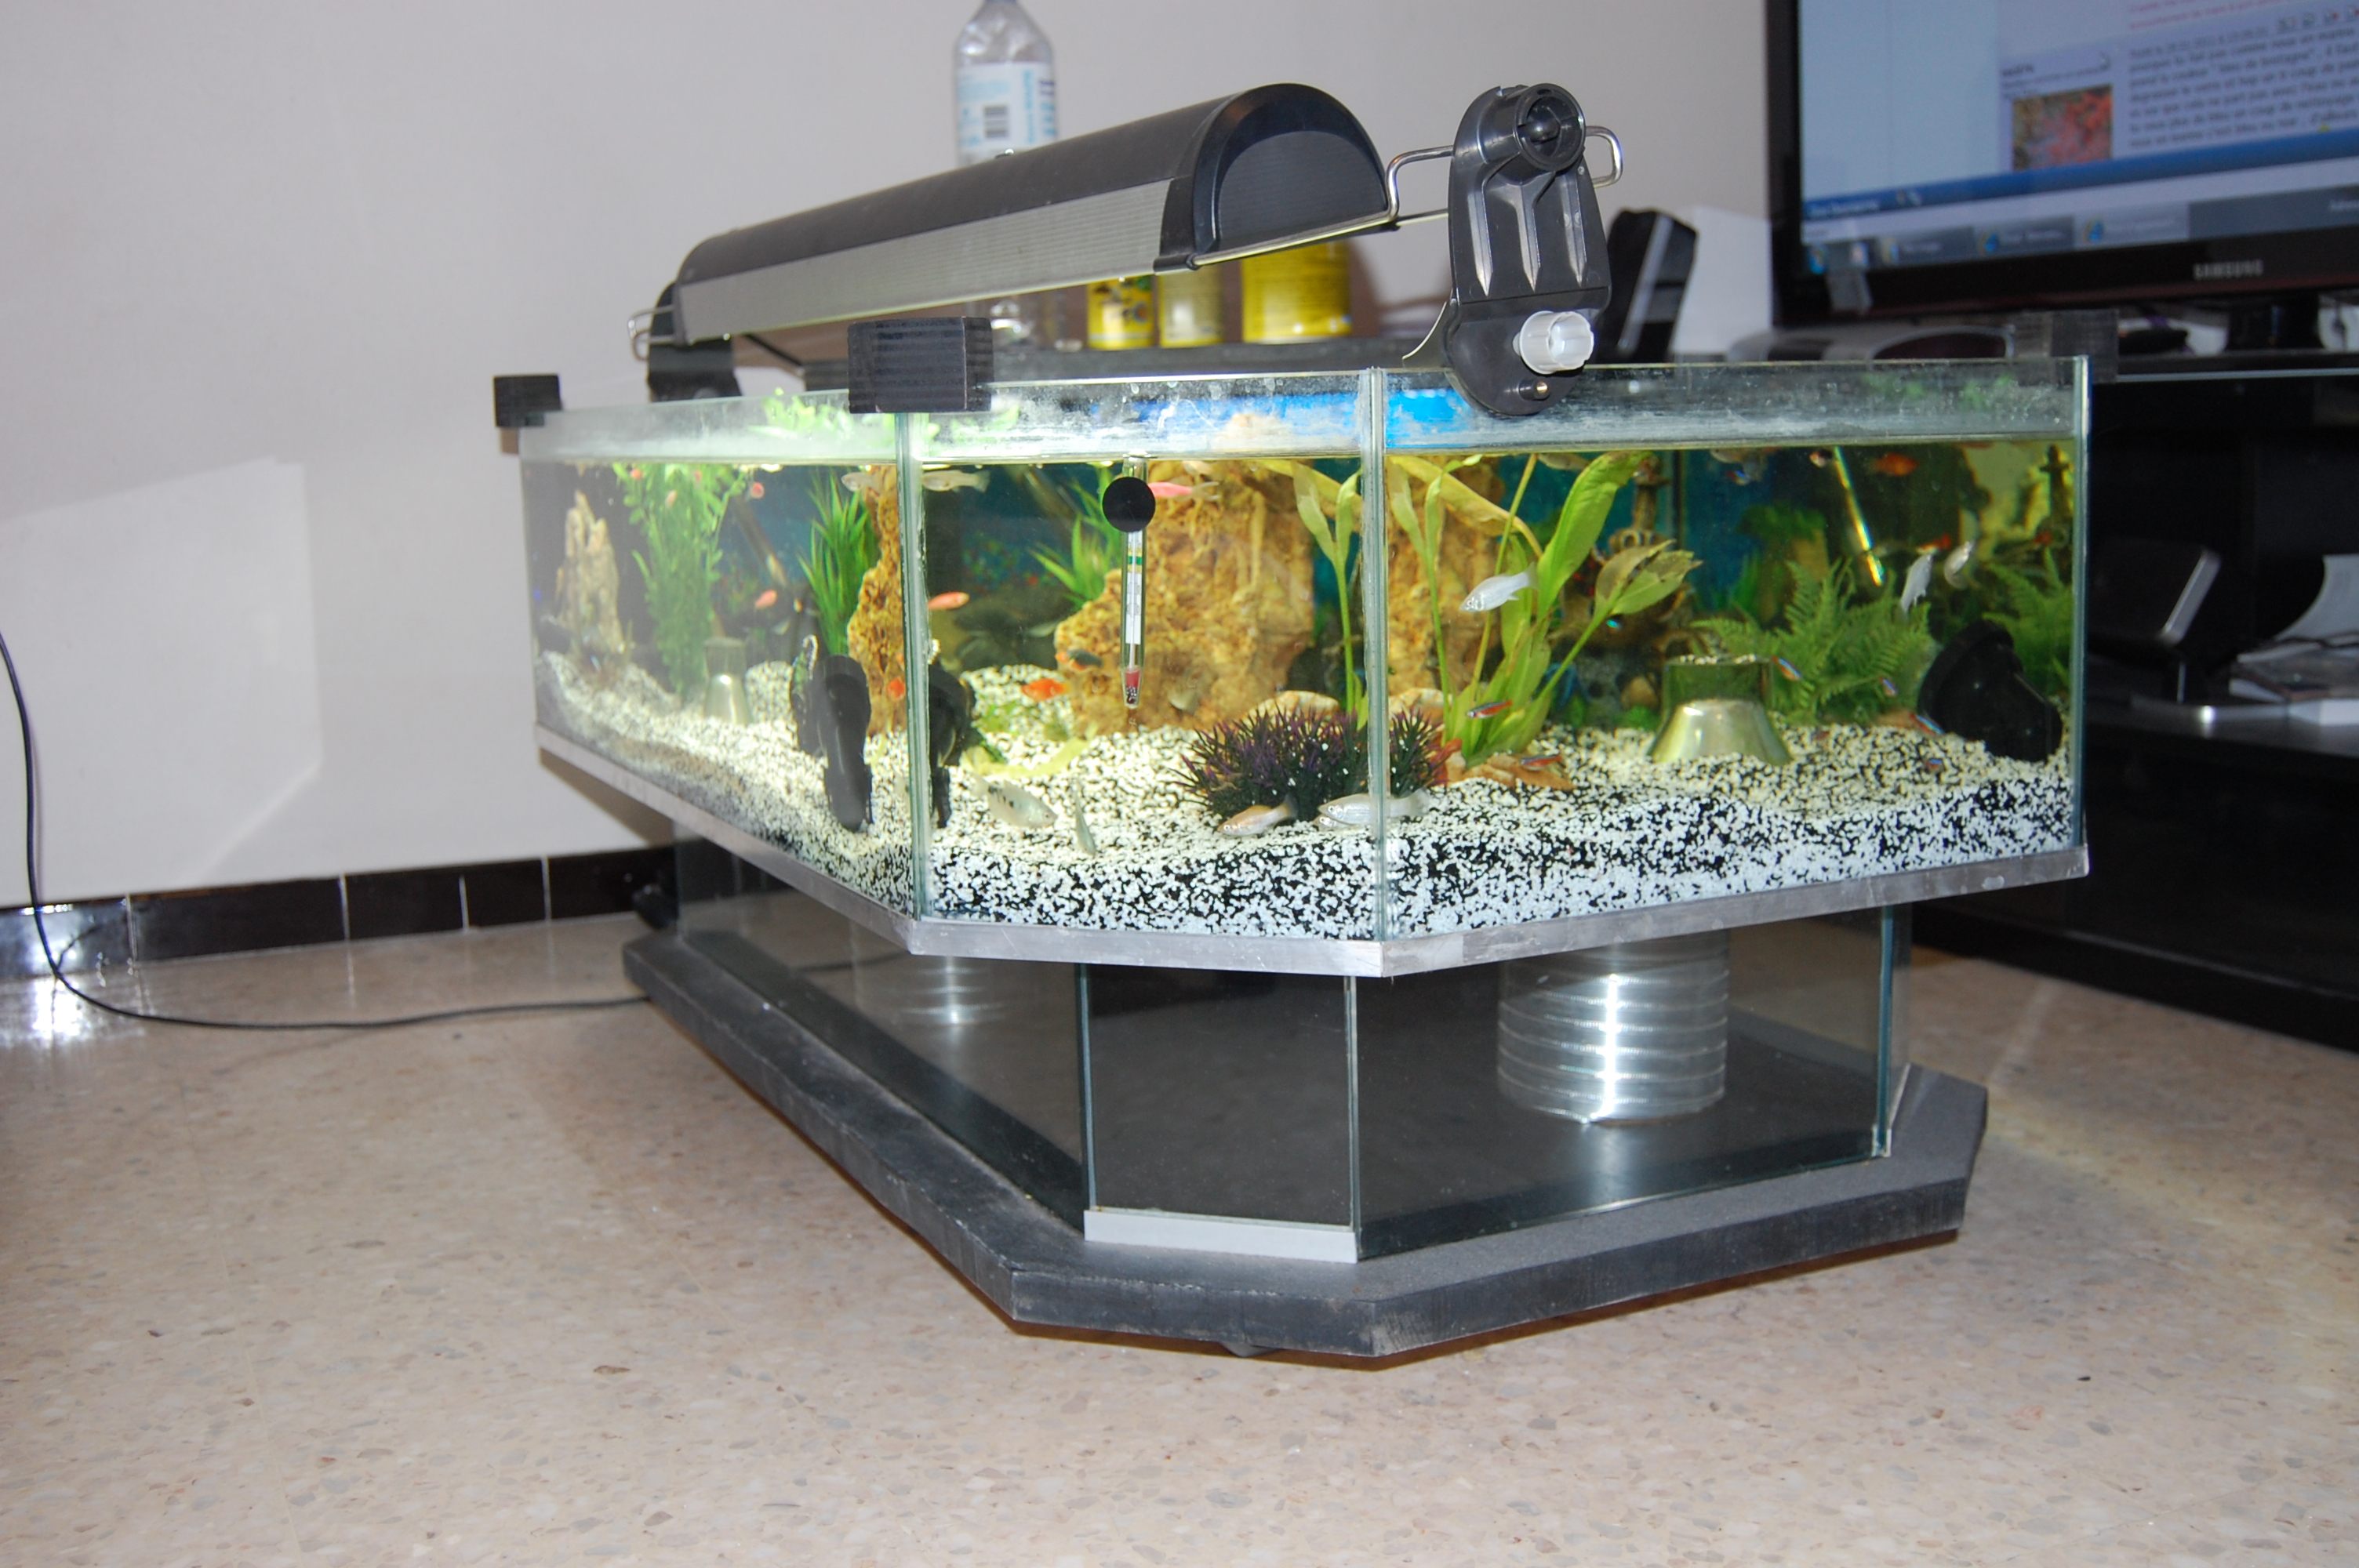 Dsc 0017 table basse aquarium fait maison lol lynka83 - Table basse faite maison ...